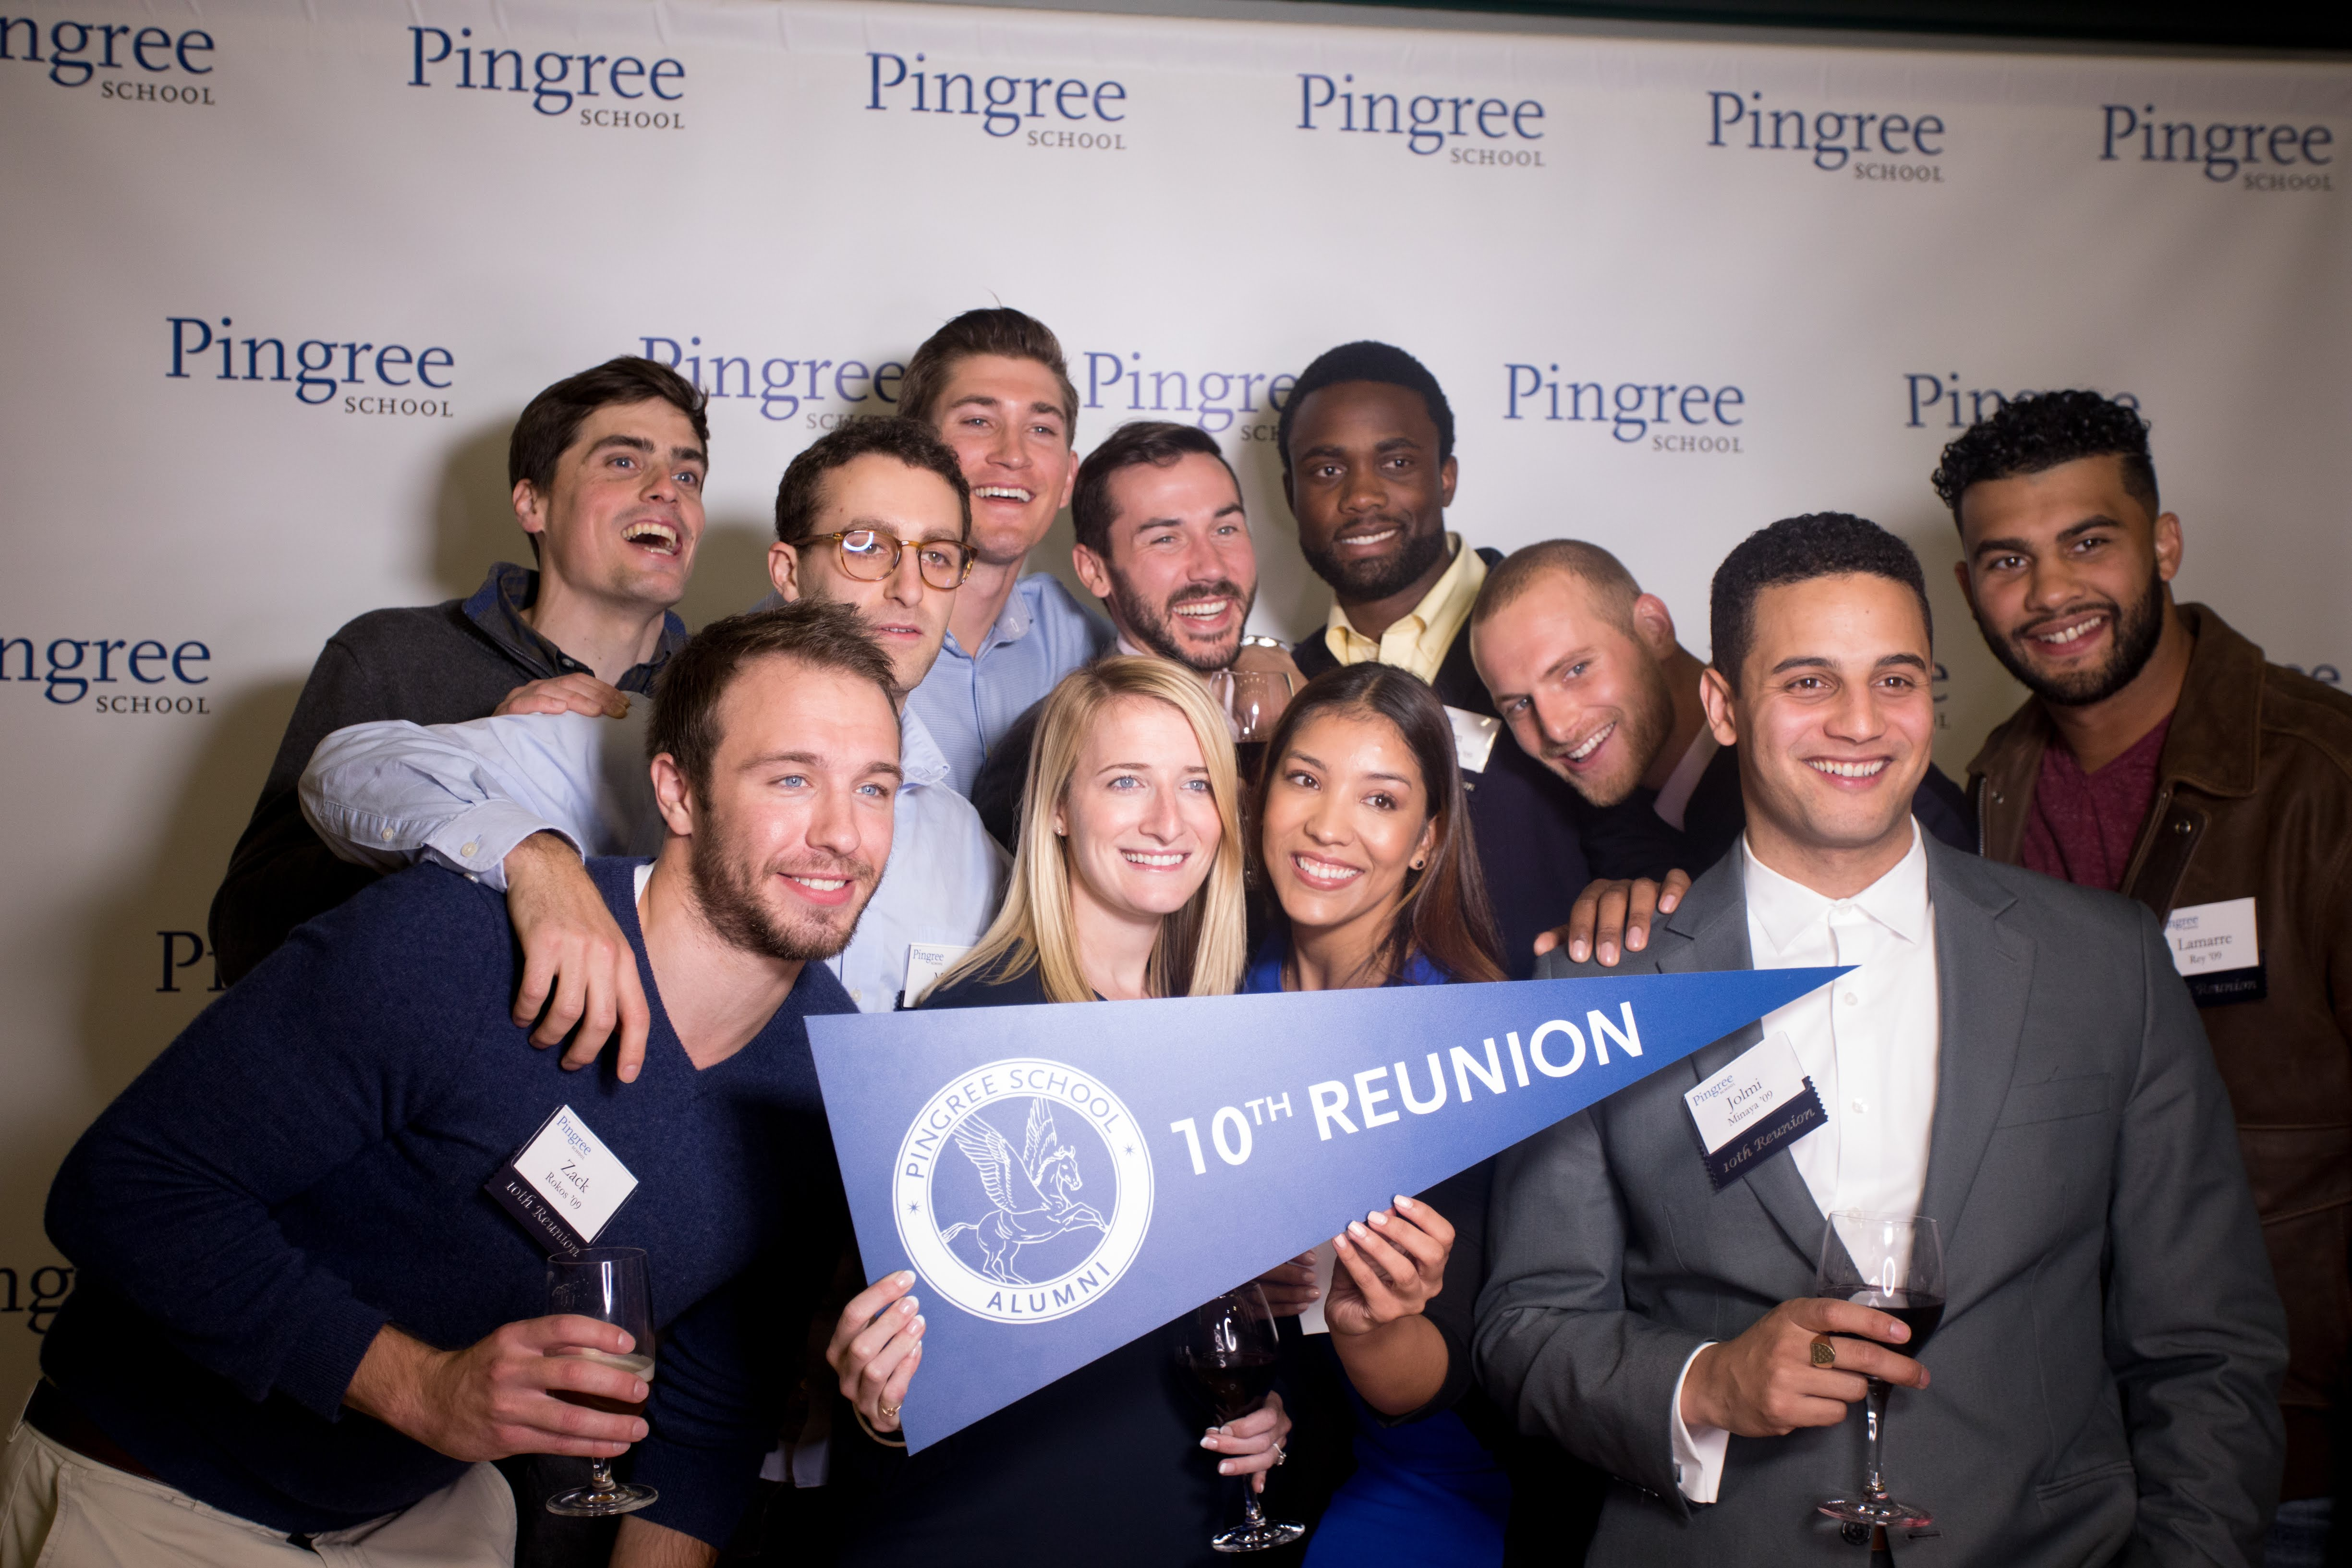 Pingree 30th reunion alumni